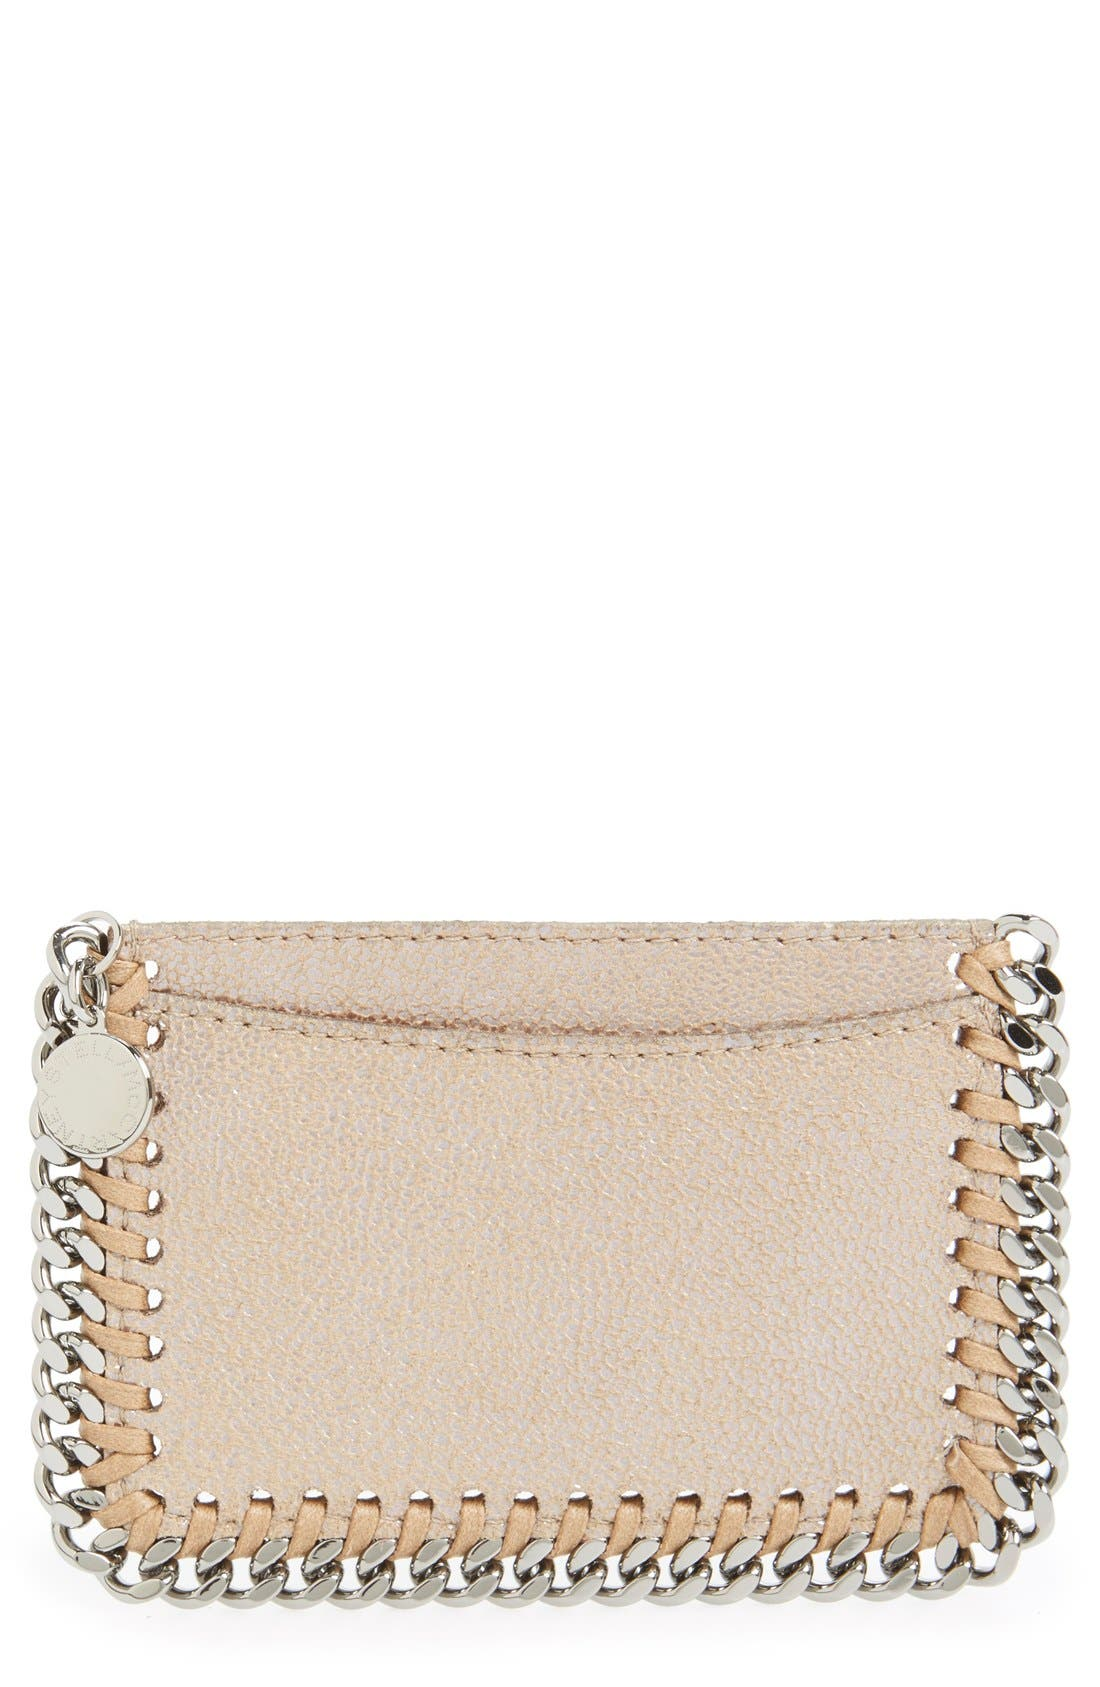 Stella McCartney 'Falabella - Shaggy Deer' Card Case